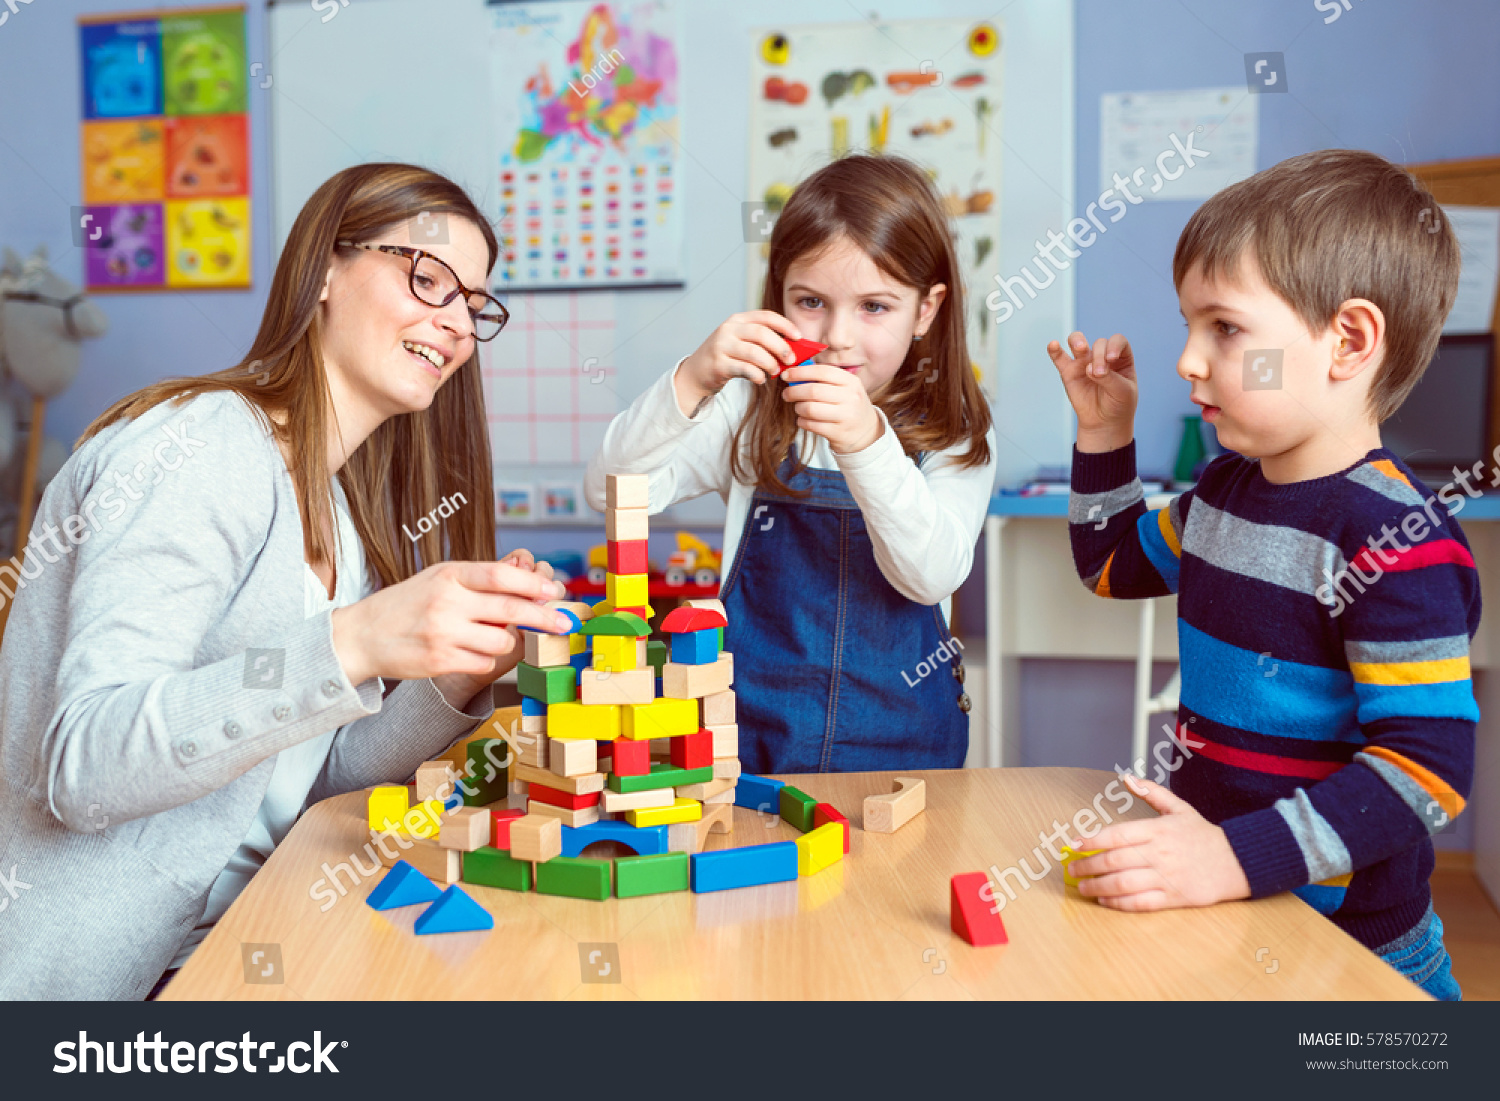 Kinder Garden: Teacher Kids Playing Together Colorful Toy Stock Photo